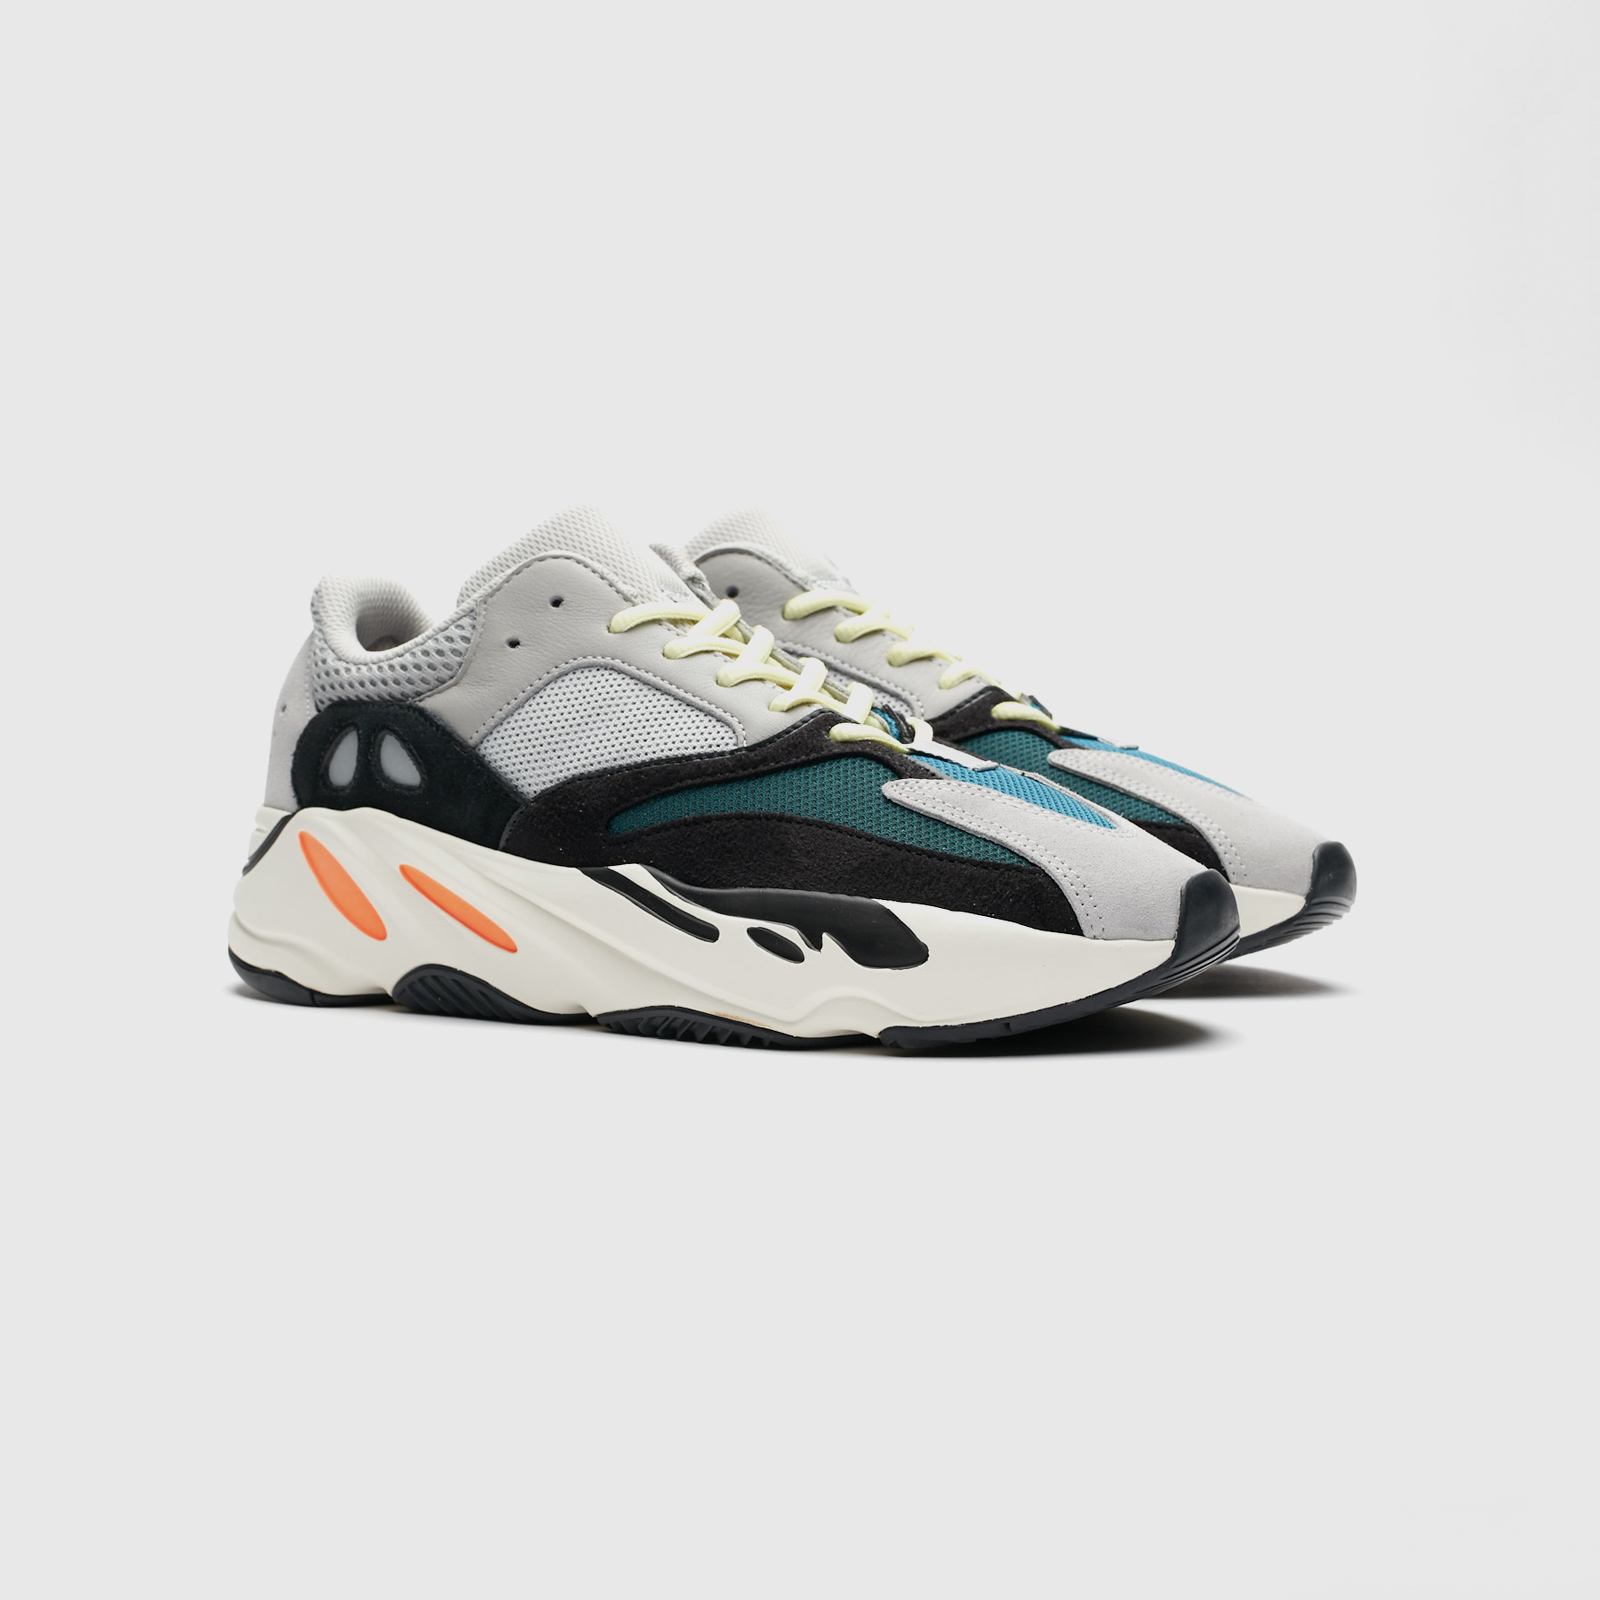 ad26597e0d8 adidas Yeezy Boost 700 - B75571 - Sneakersnstuff